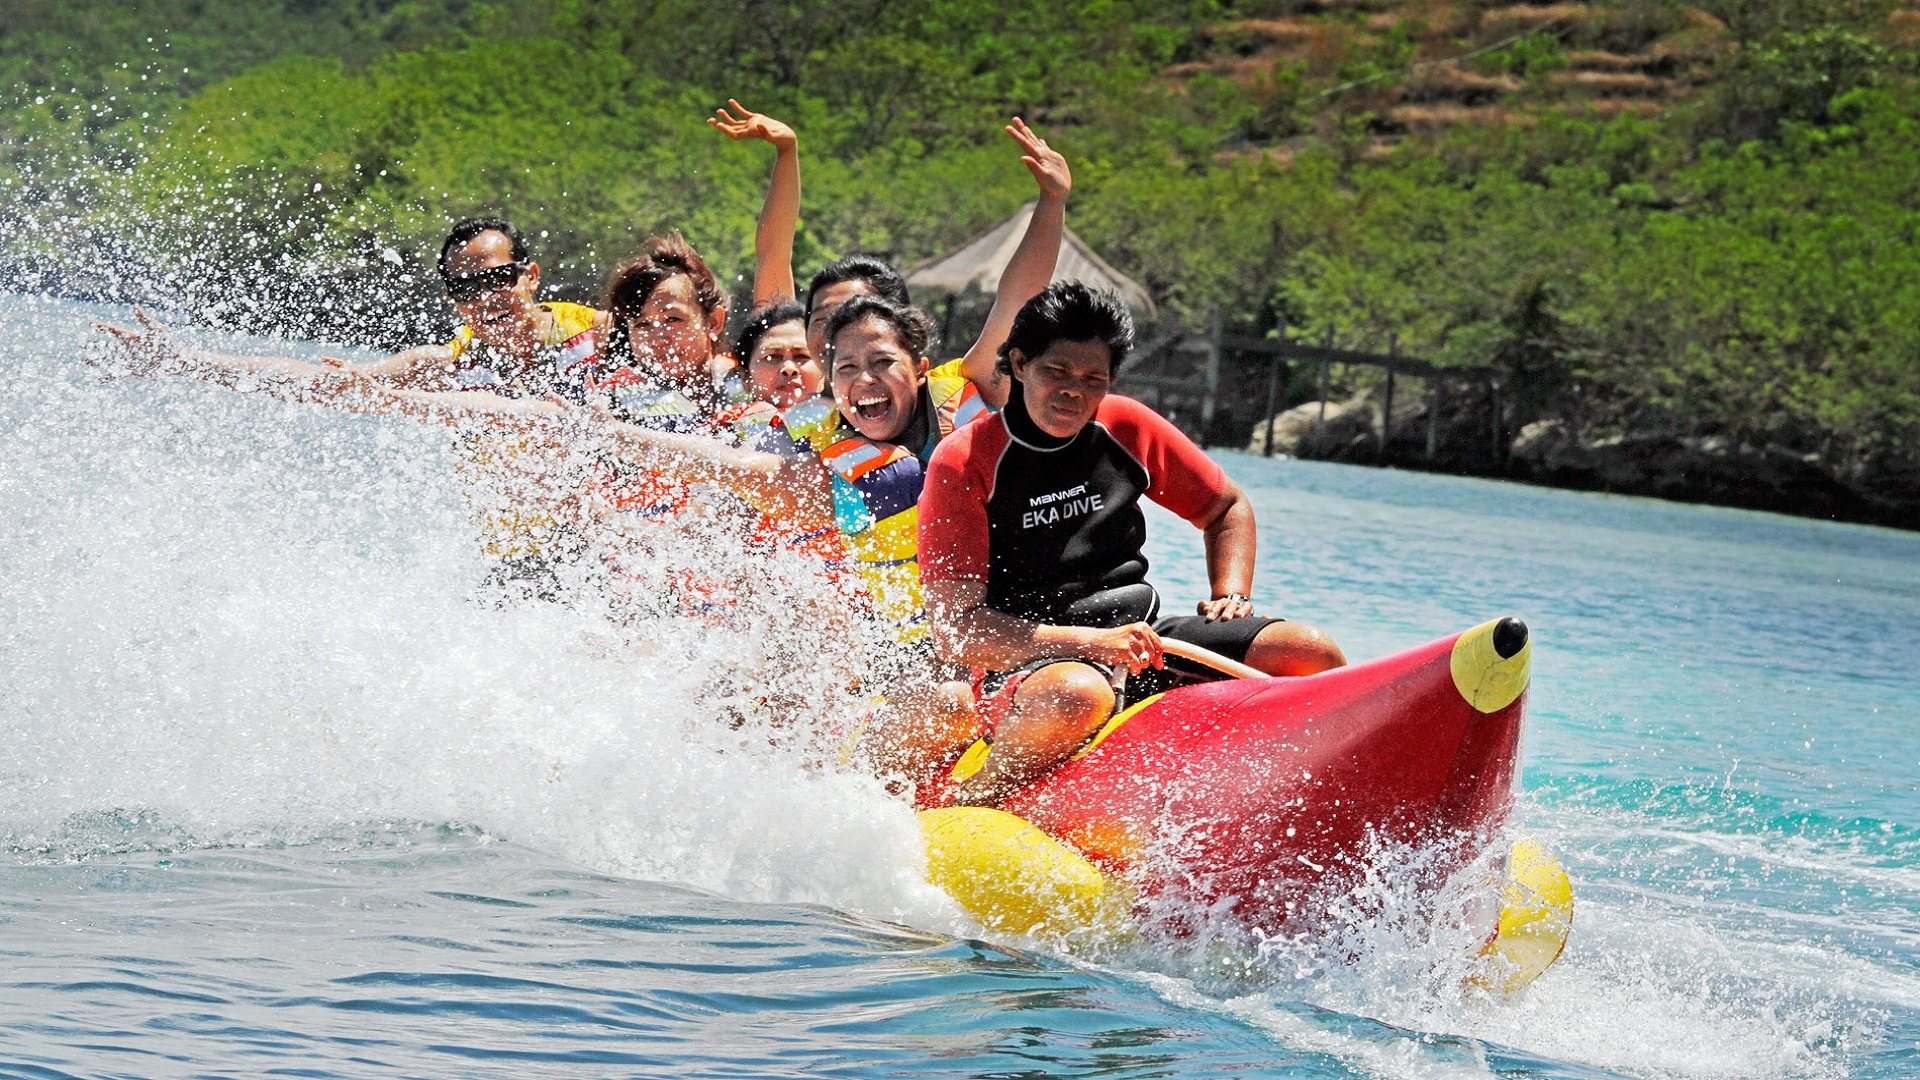 six people riding inflatable banana boat